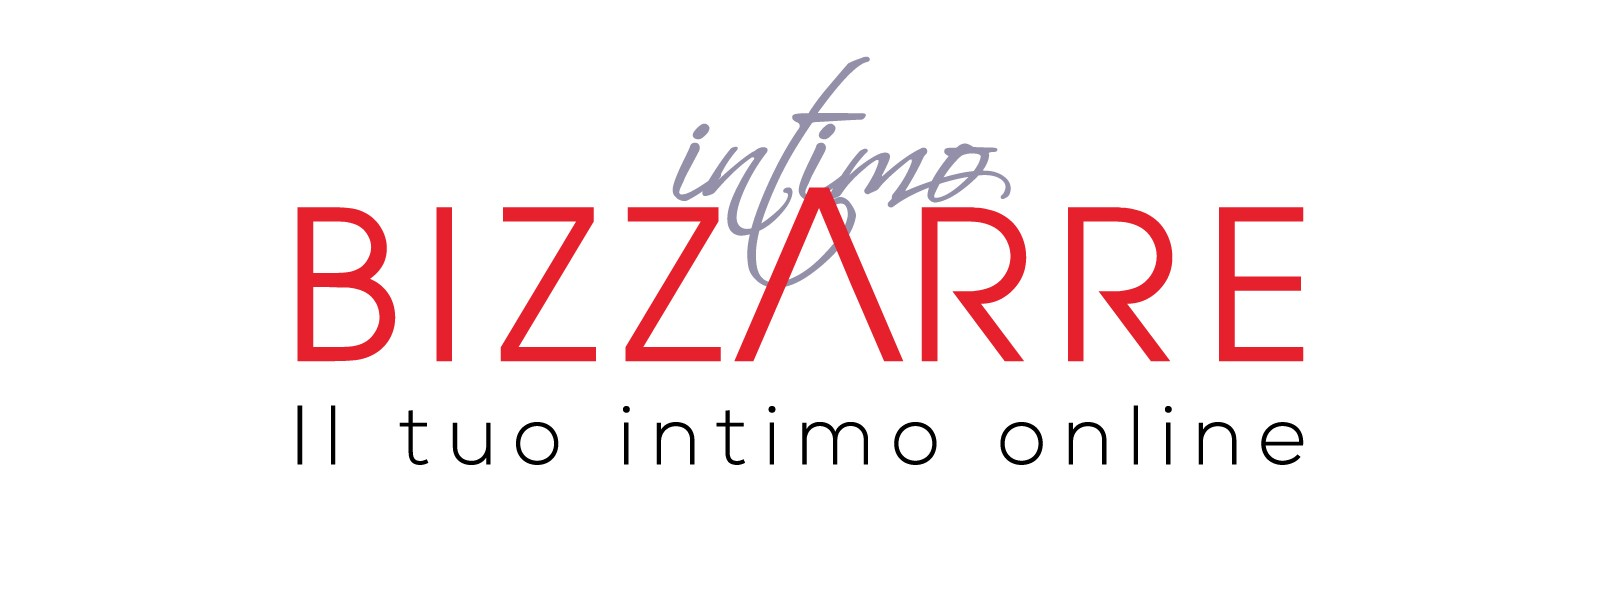 Bizzarre Intimo